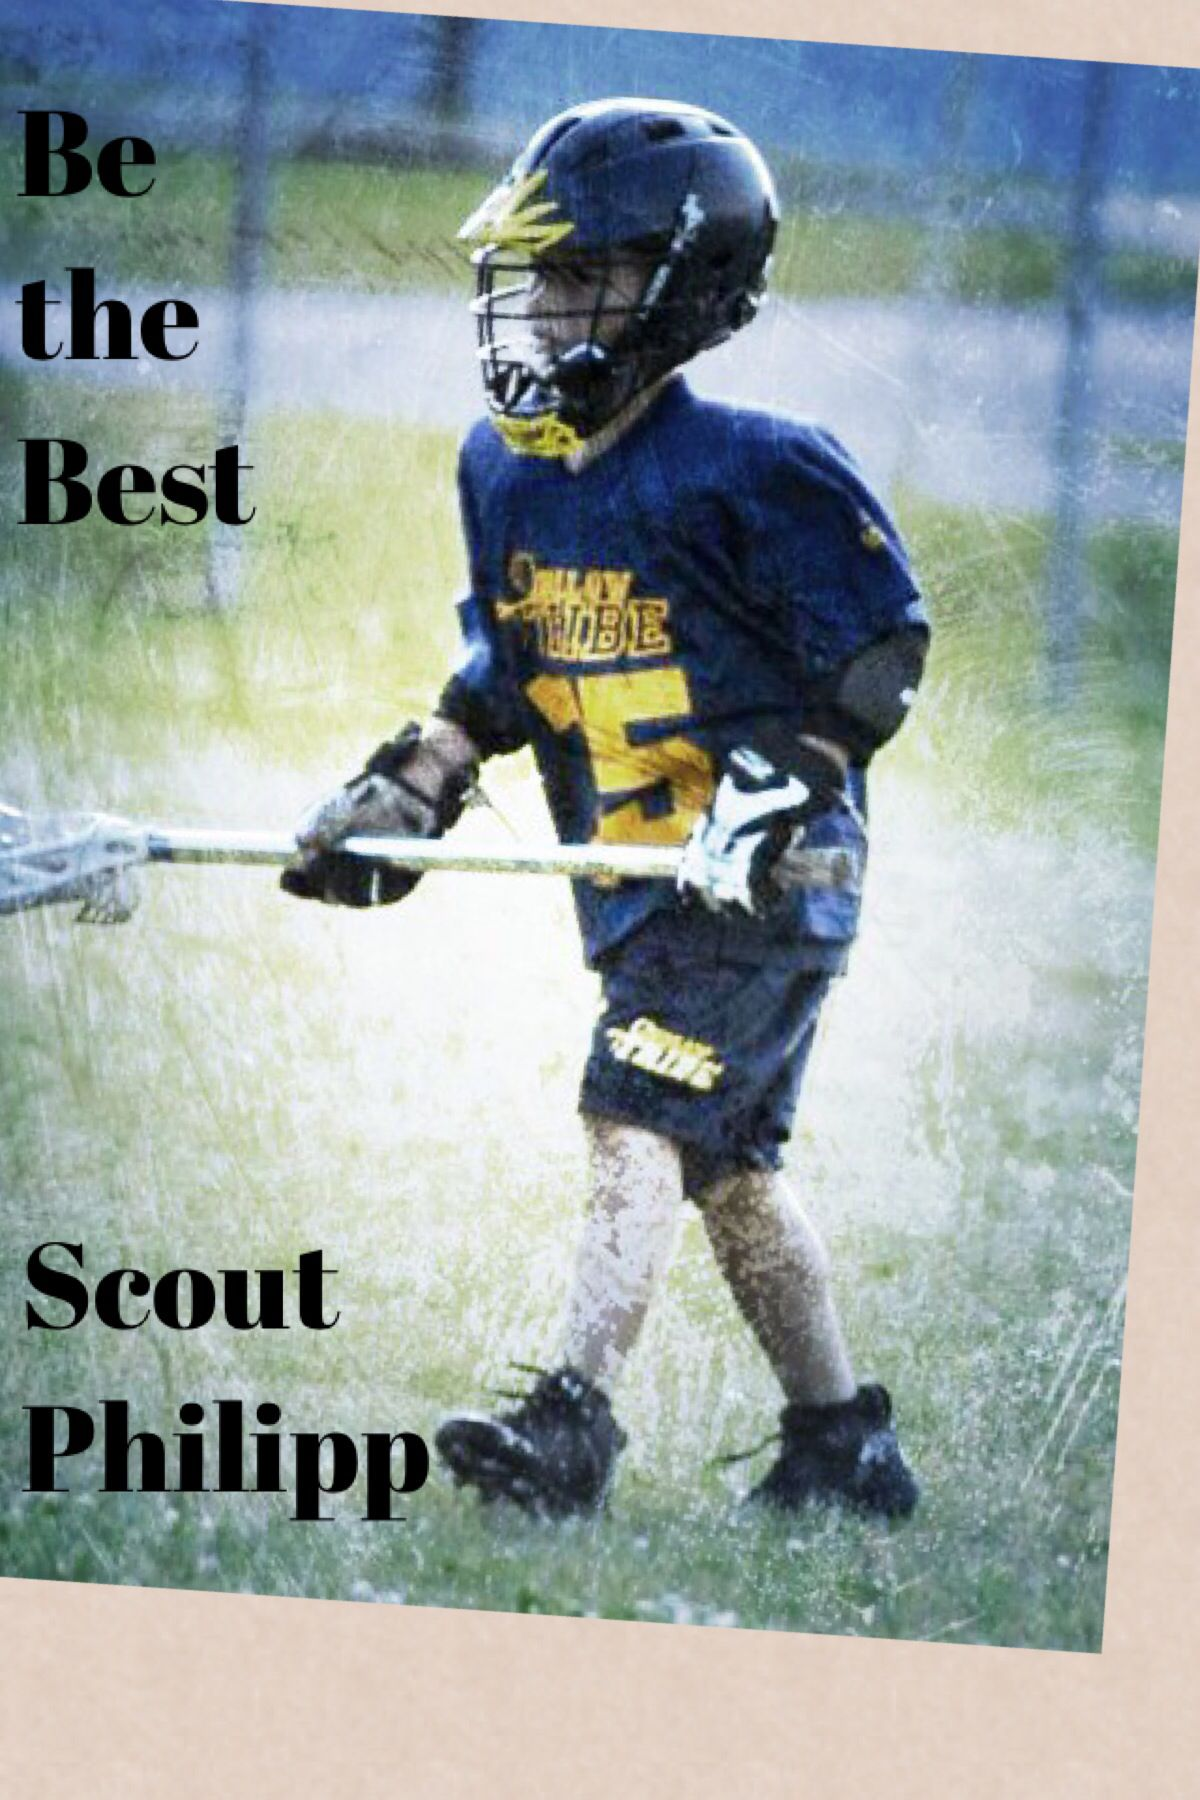 Be the Best Lacrosse, Baseball cards, My boys